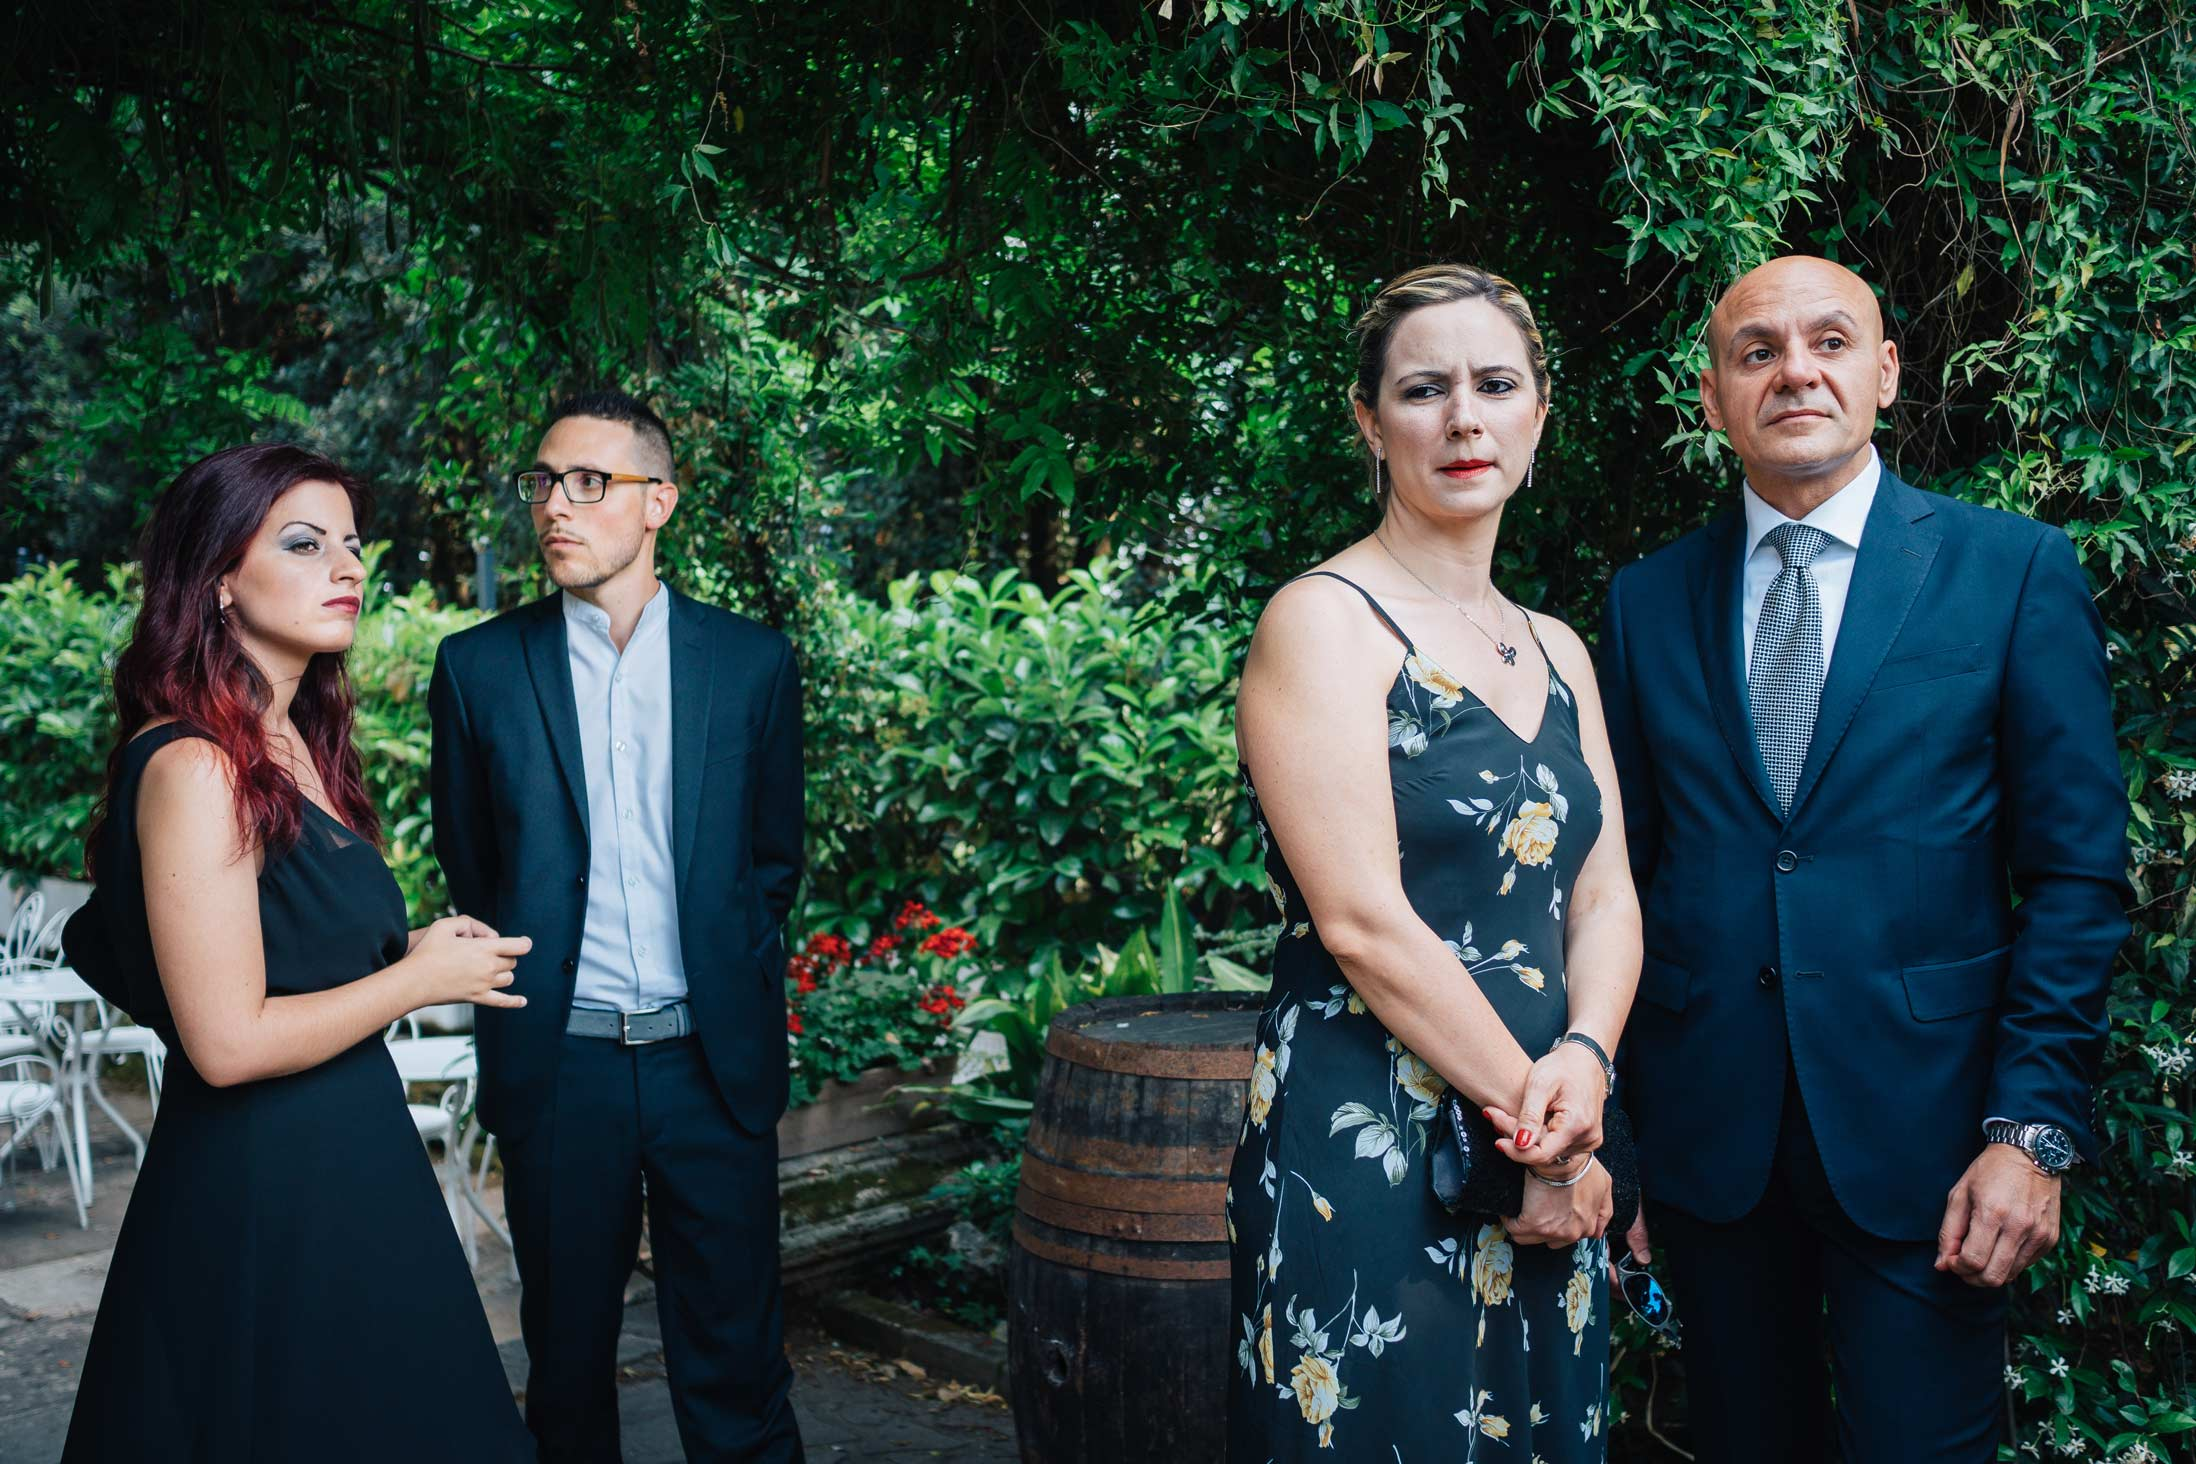 Reportage-Wedding-Photographer-Italy-1-Reception